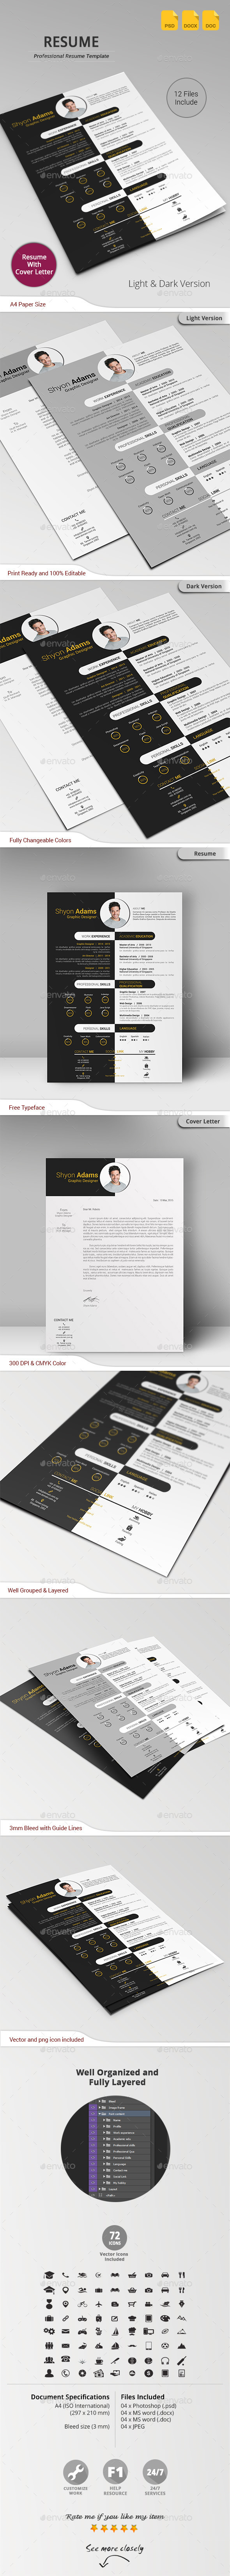 GraphicRiver Resume 10871875